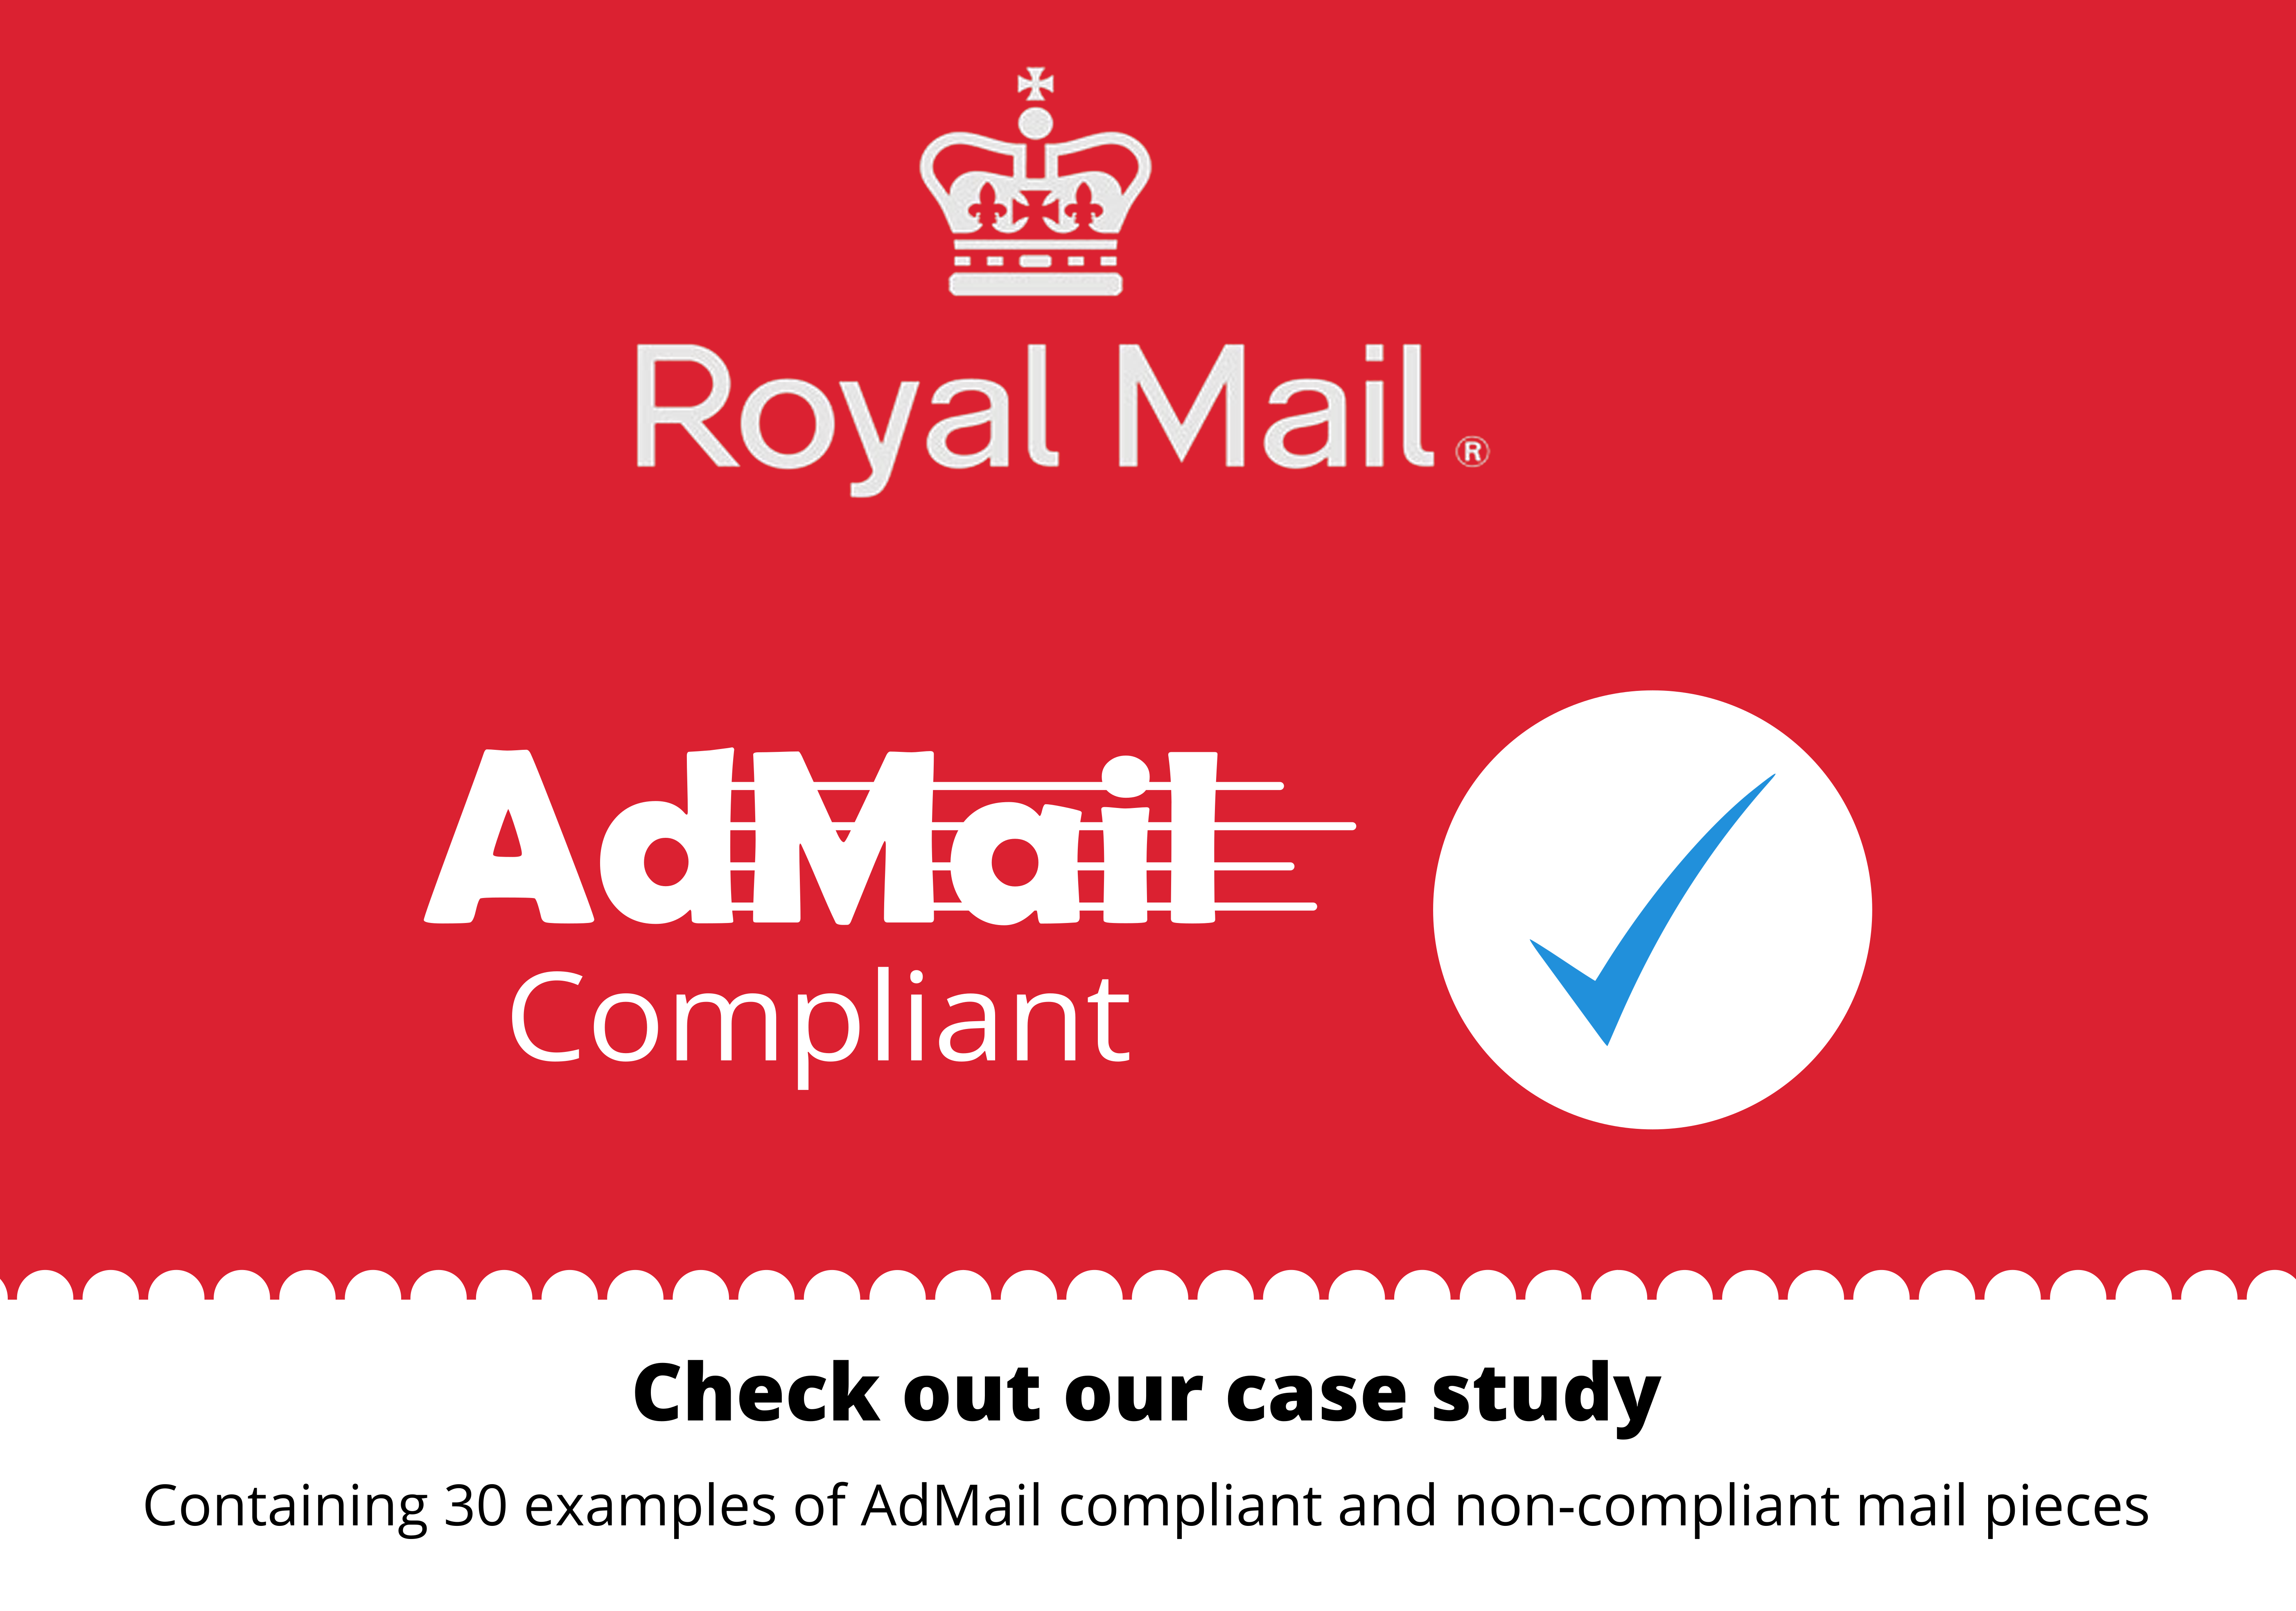 admail-compliant-royal-mail